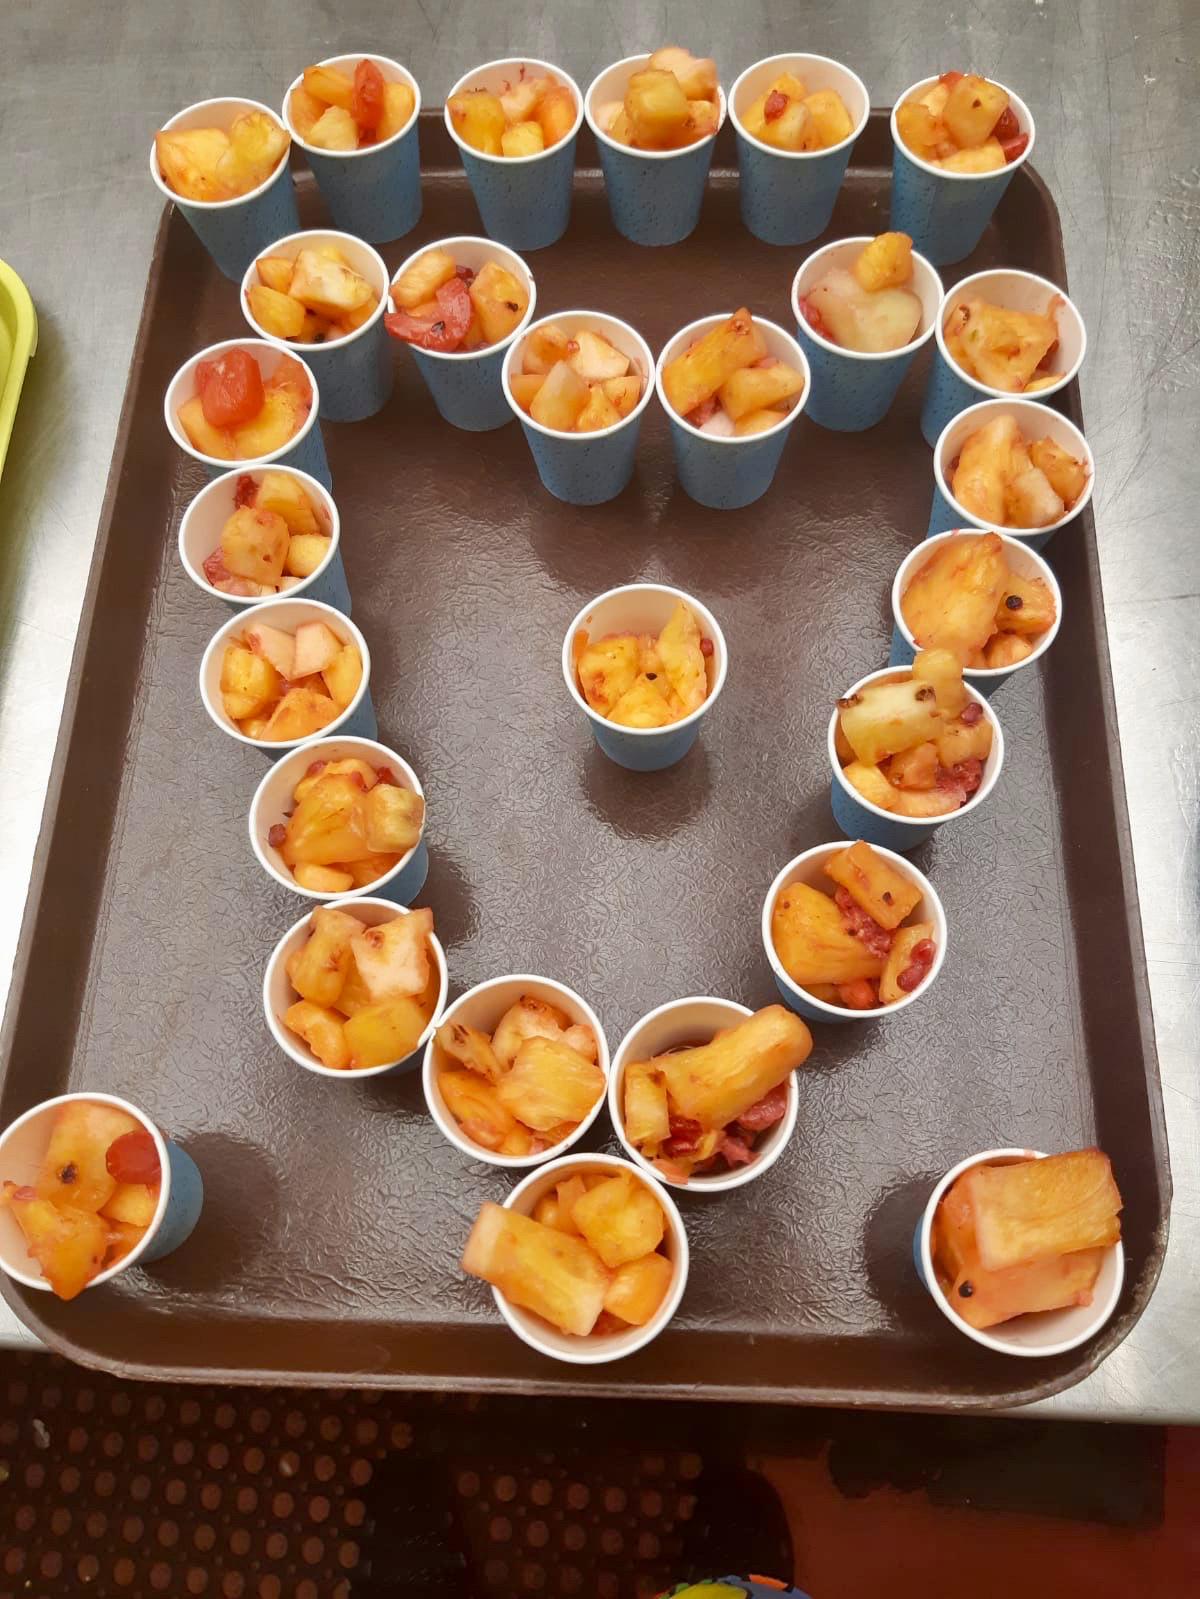 Bowls of fruit salad arranged in a heart